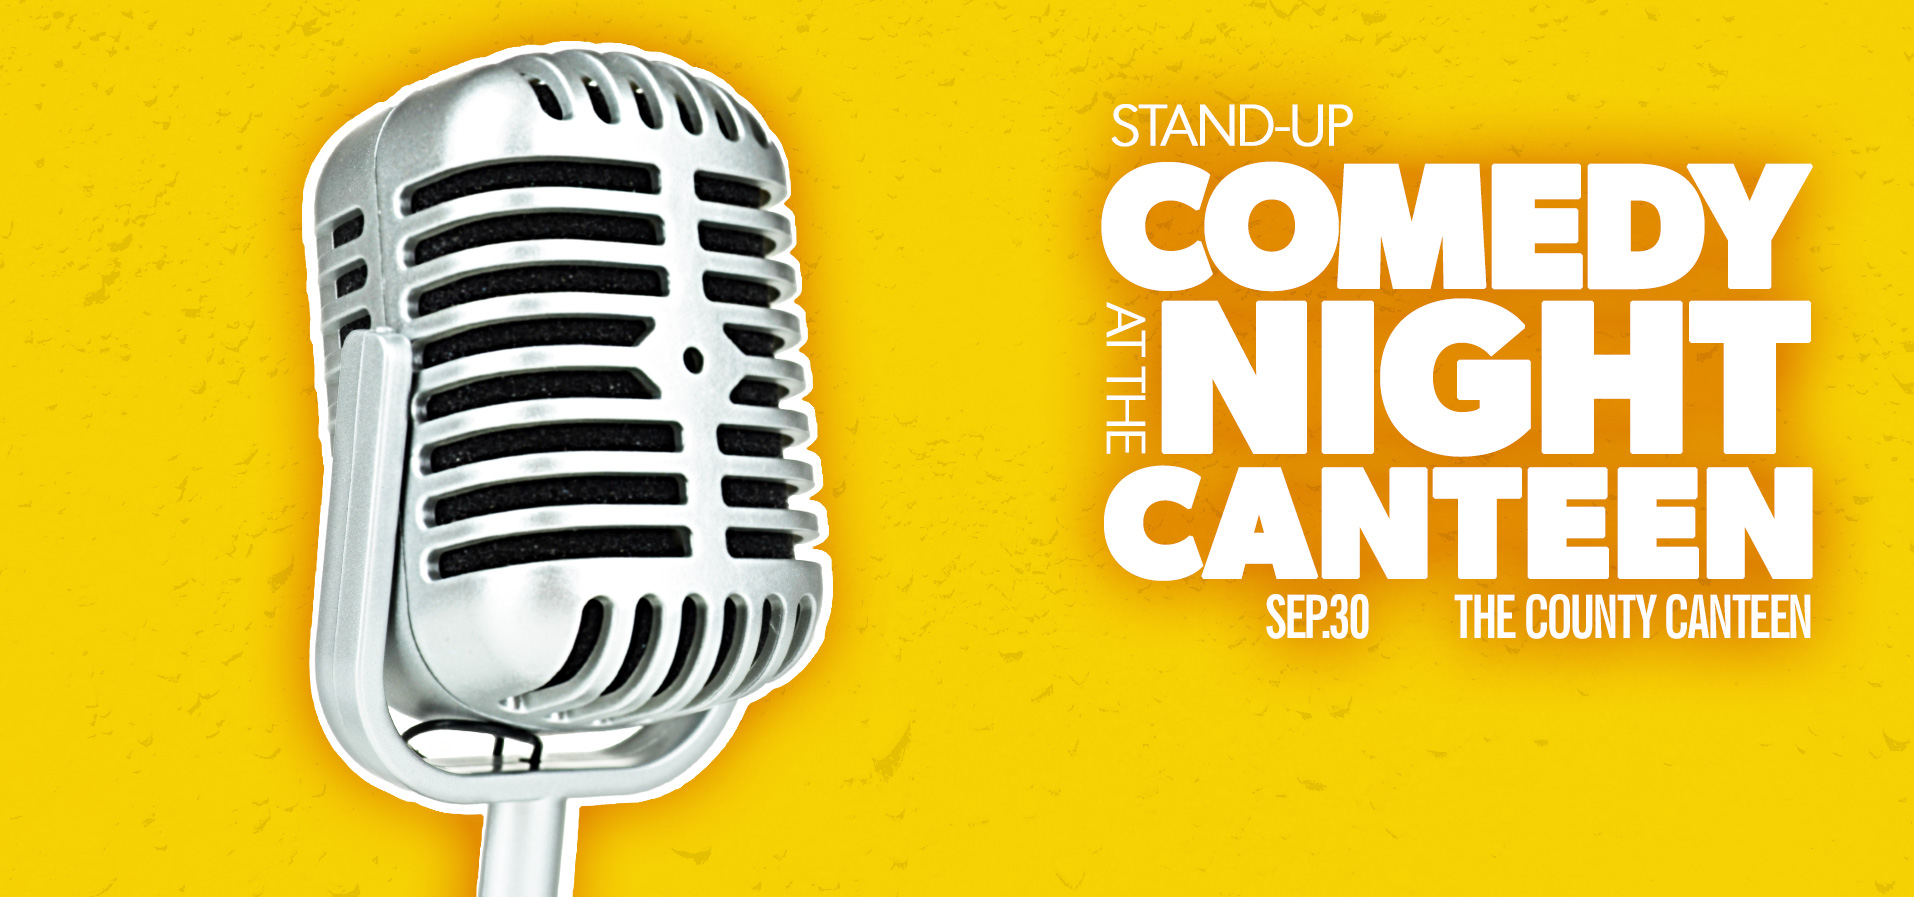 Stand-Up Comedy Night at the Canteen